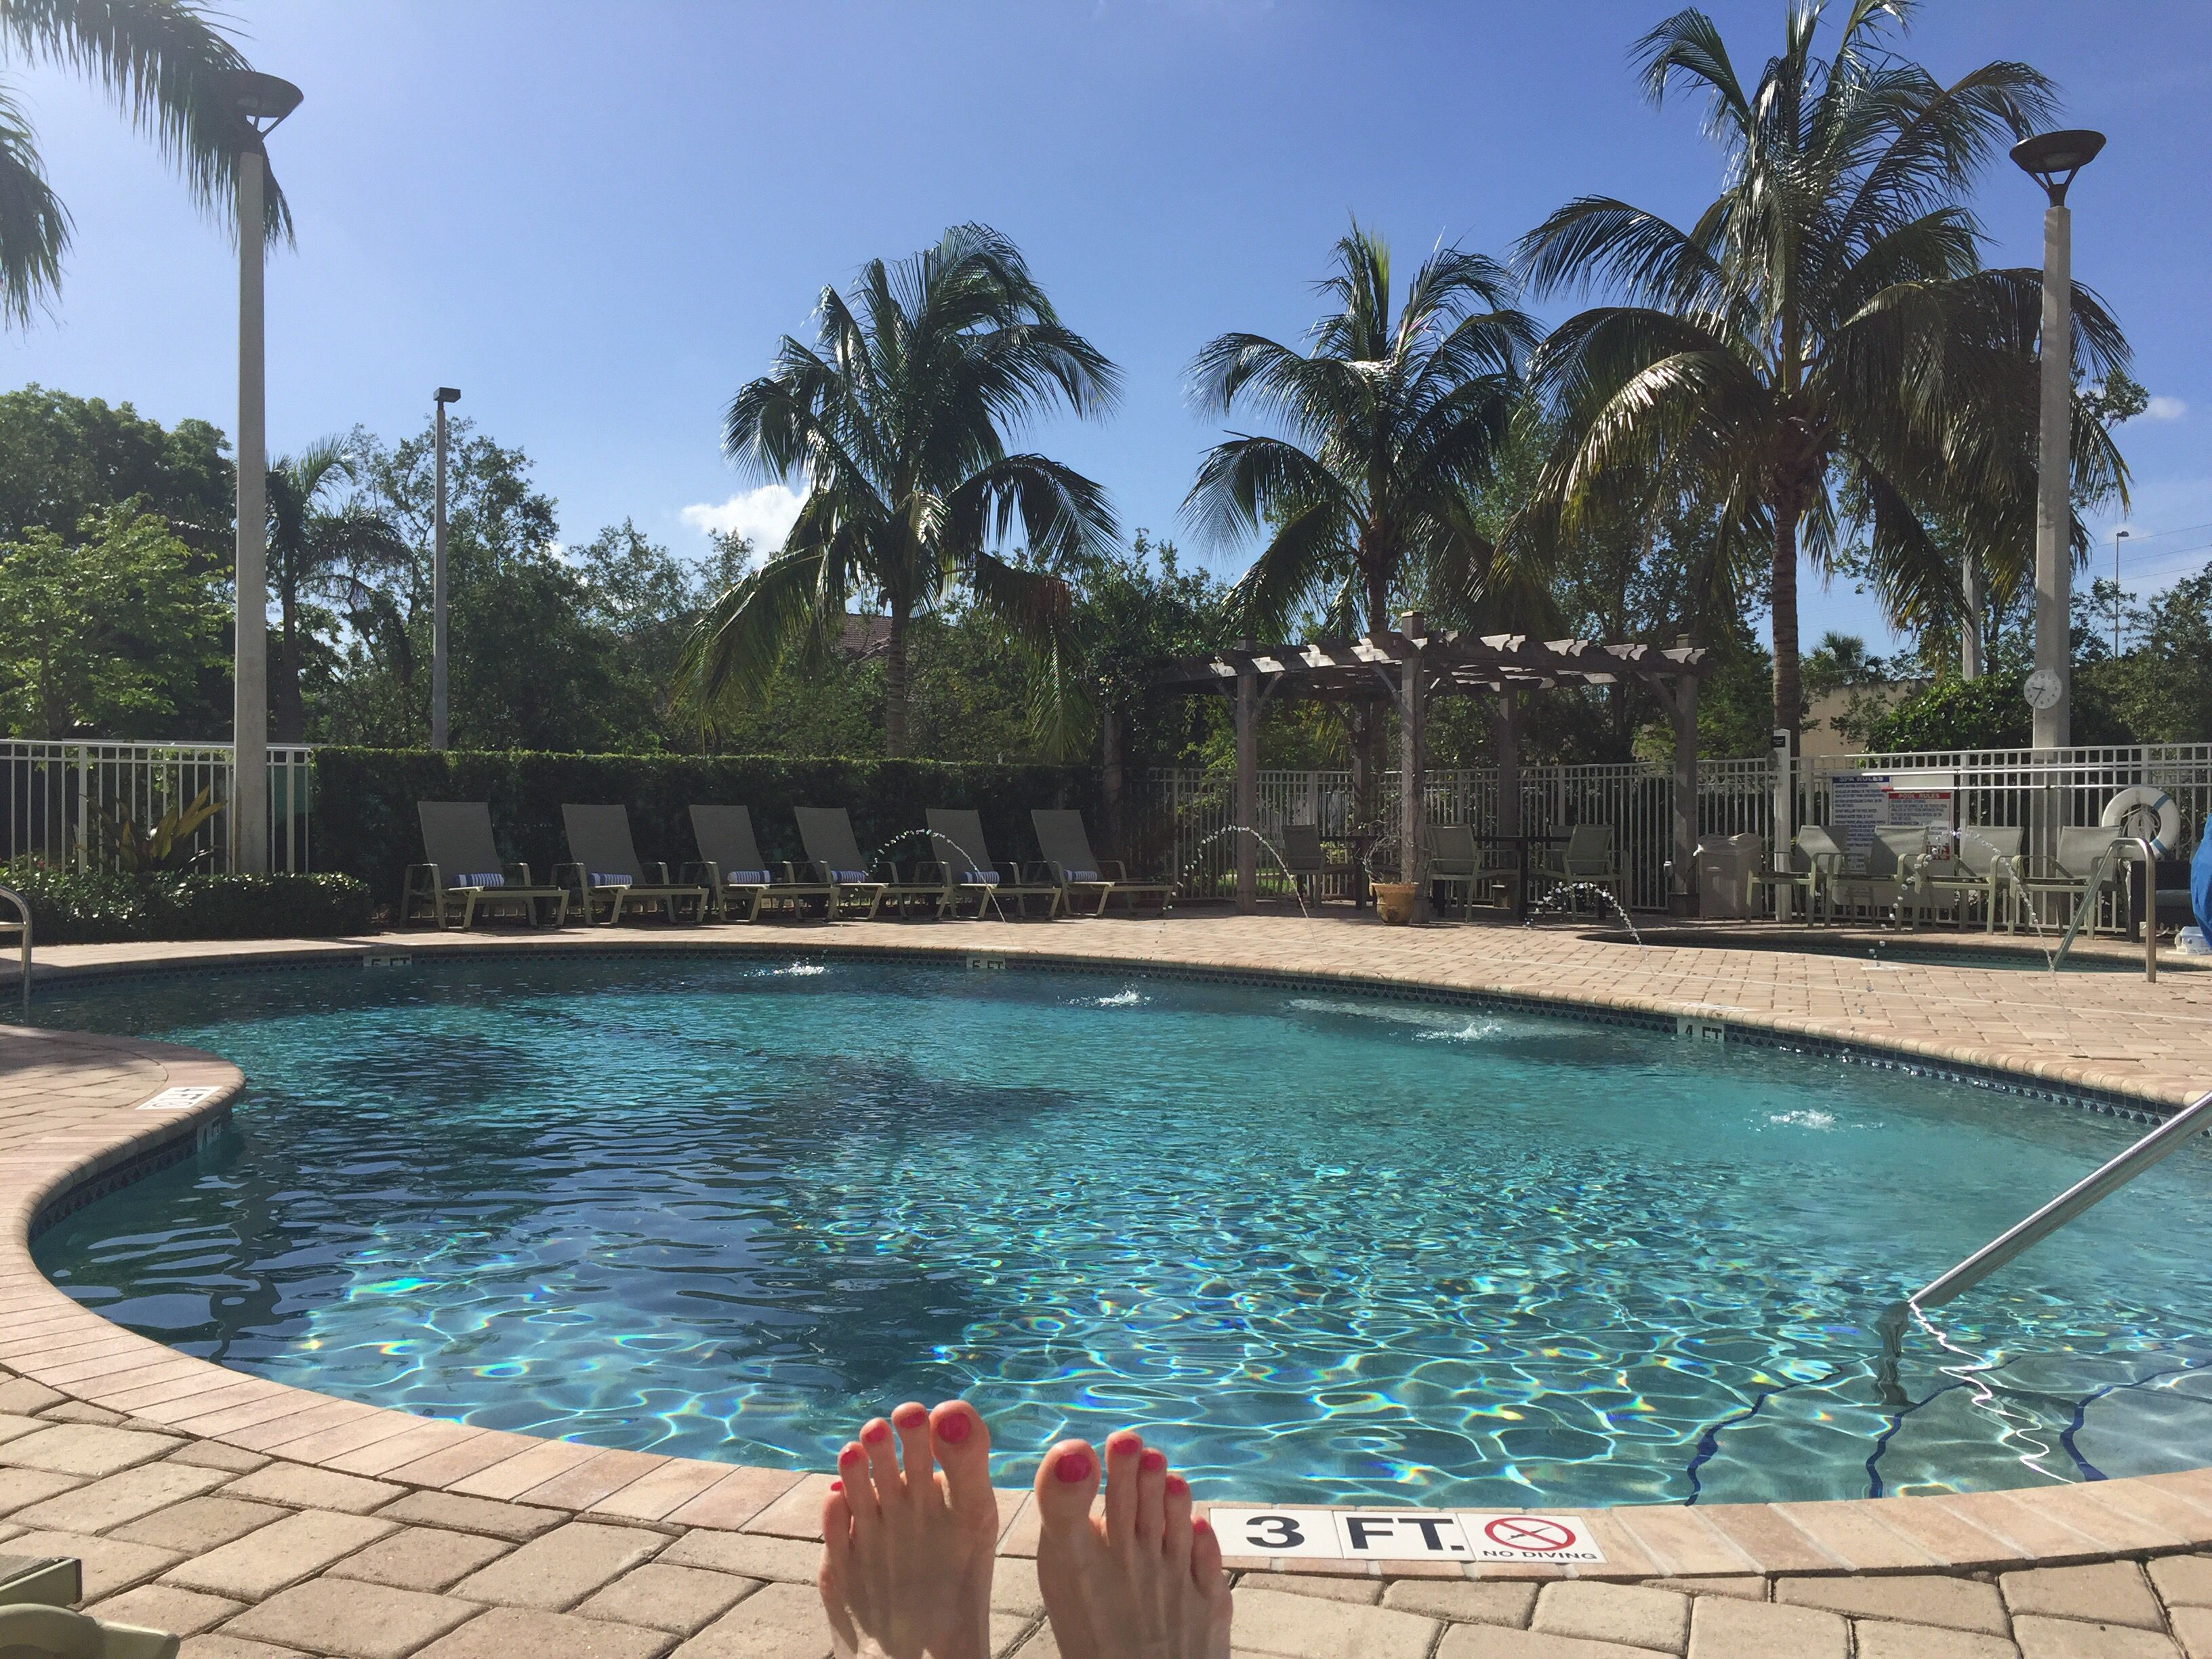 Love Florida Hotel Pools In The Morning Have A Beautiful